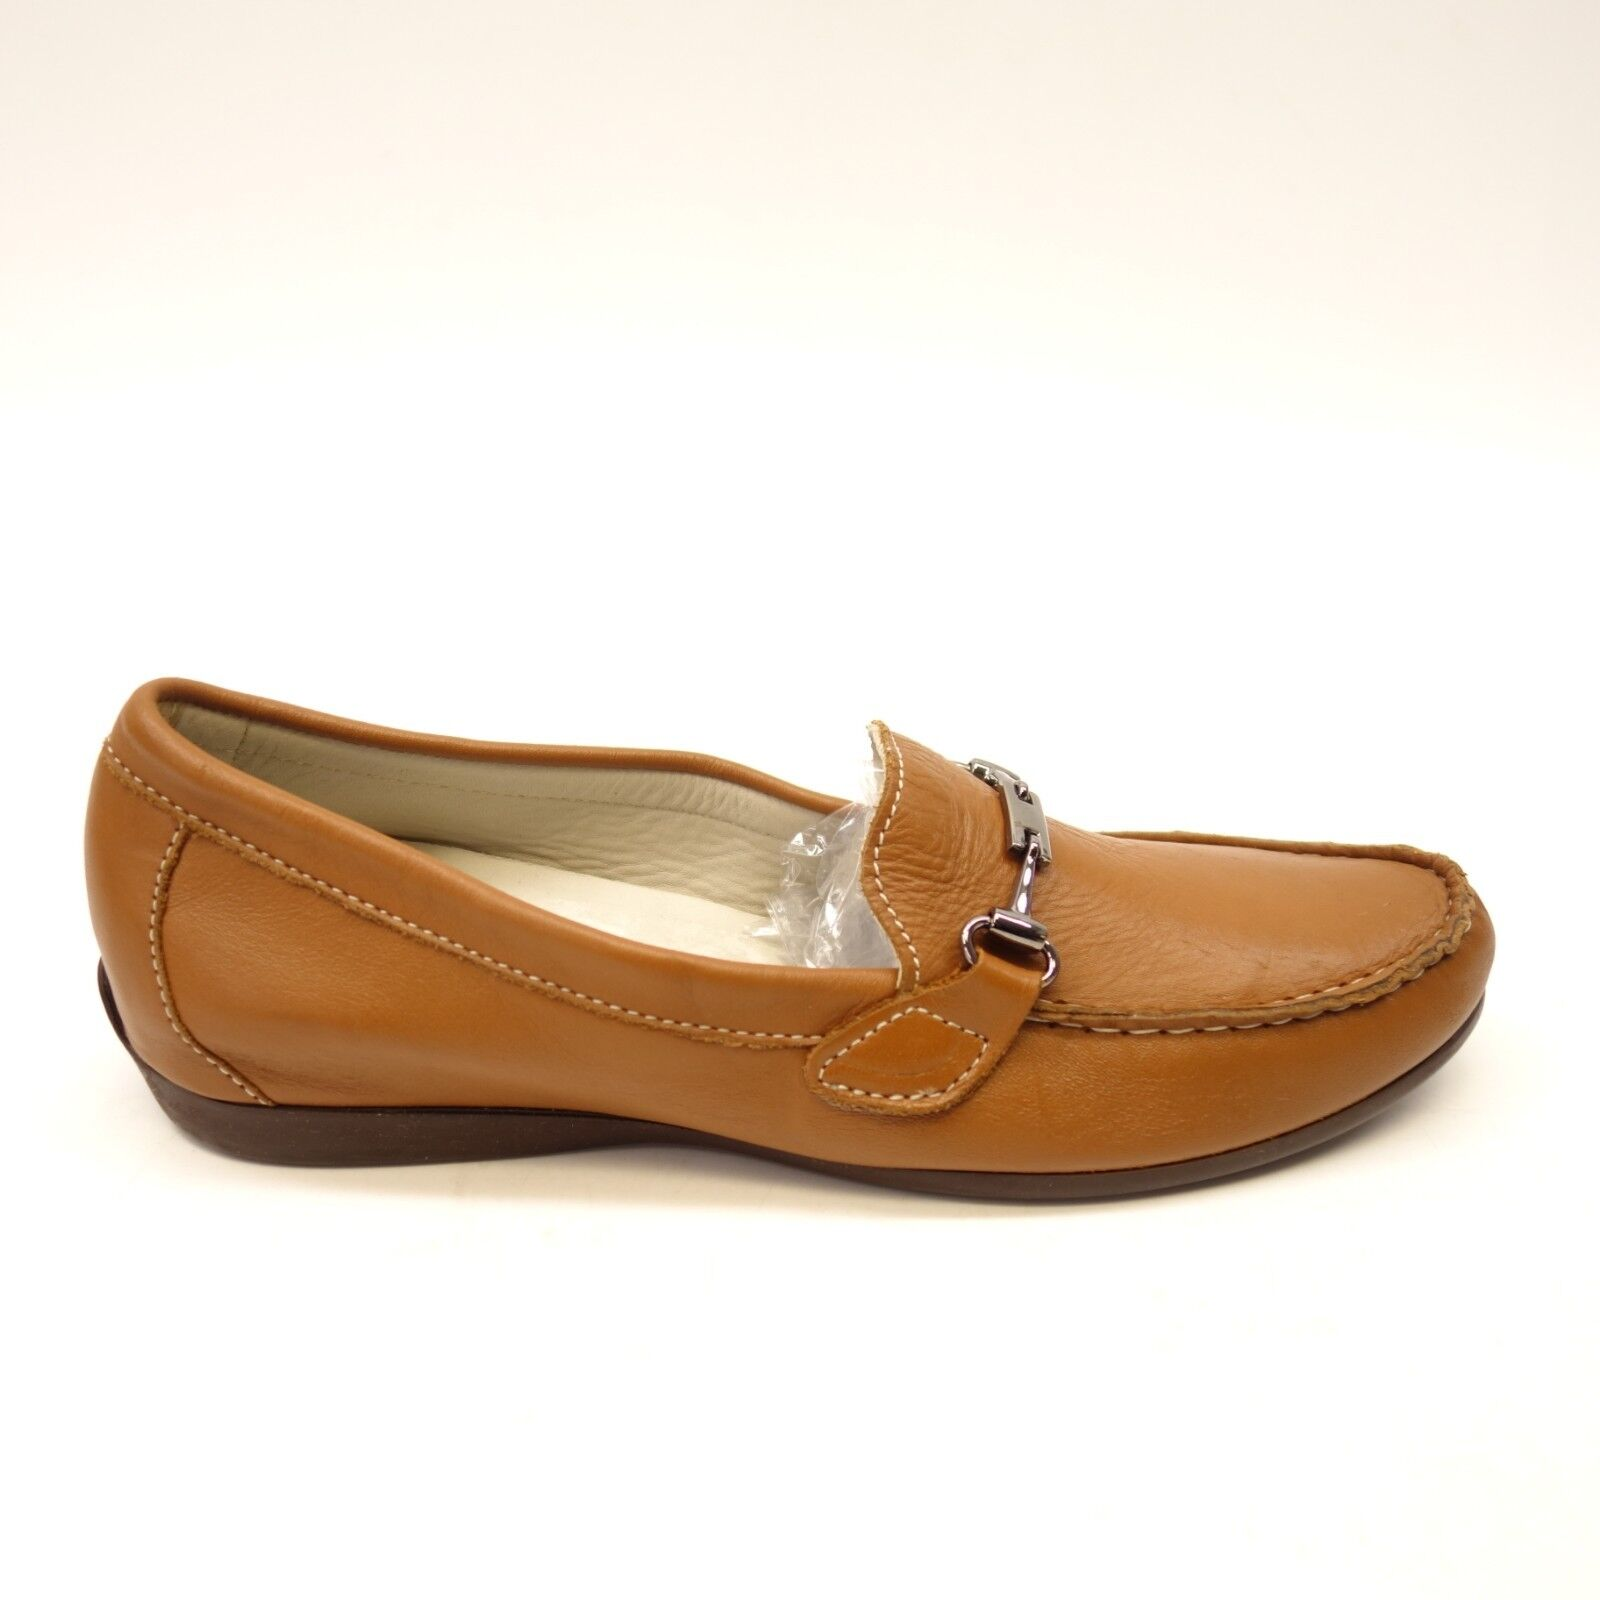 New Womens Munro Ramie 206446 Dark Brown Suede Penny Loafers shoes Sz 8 M